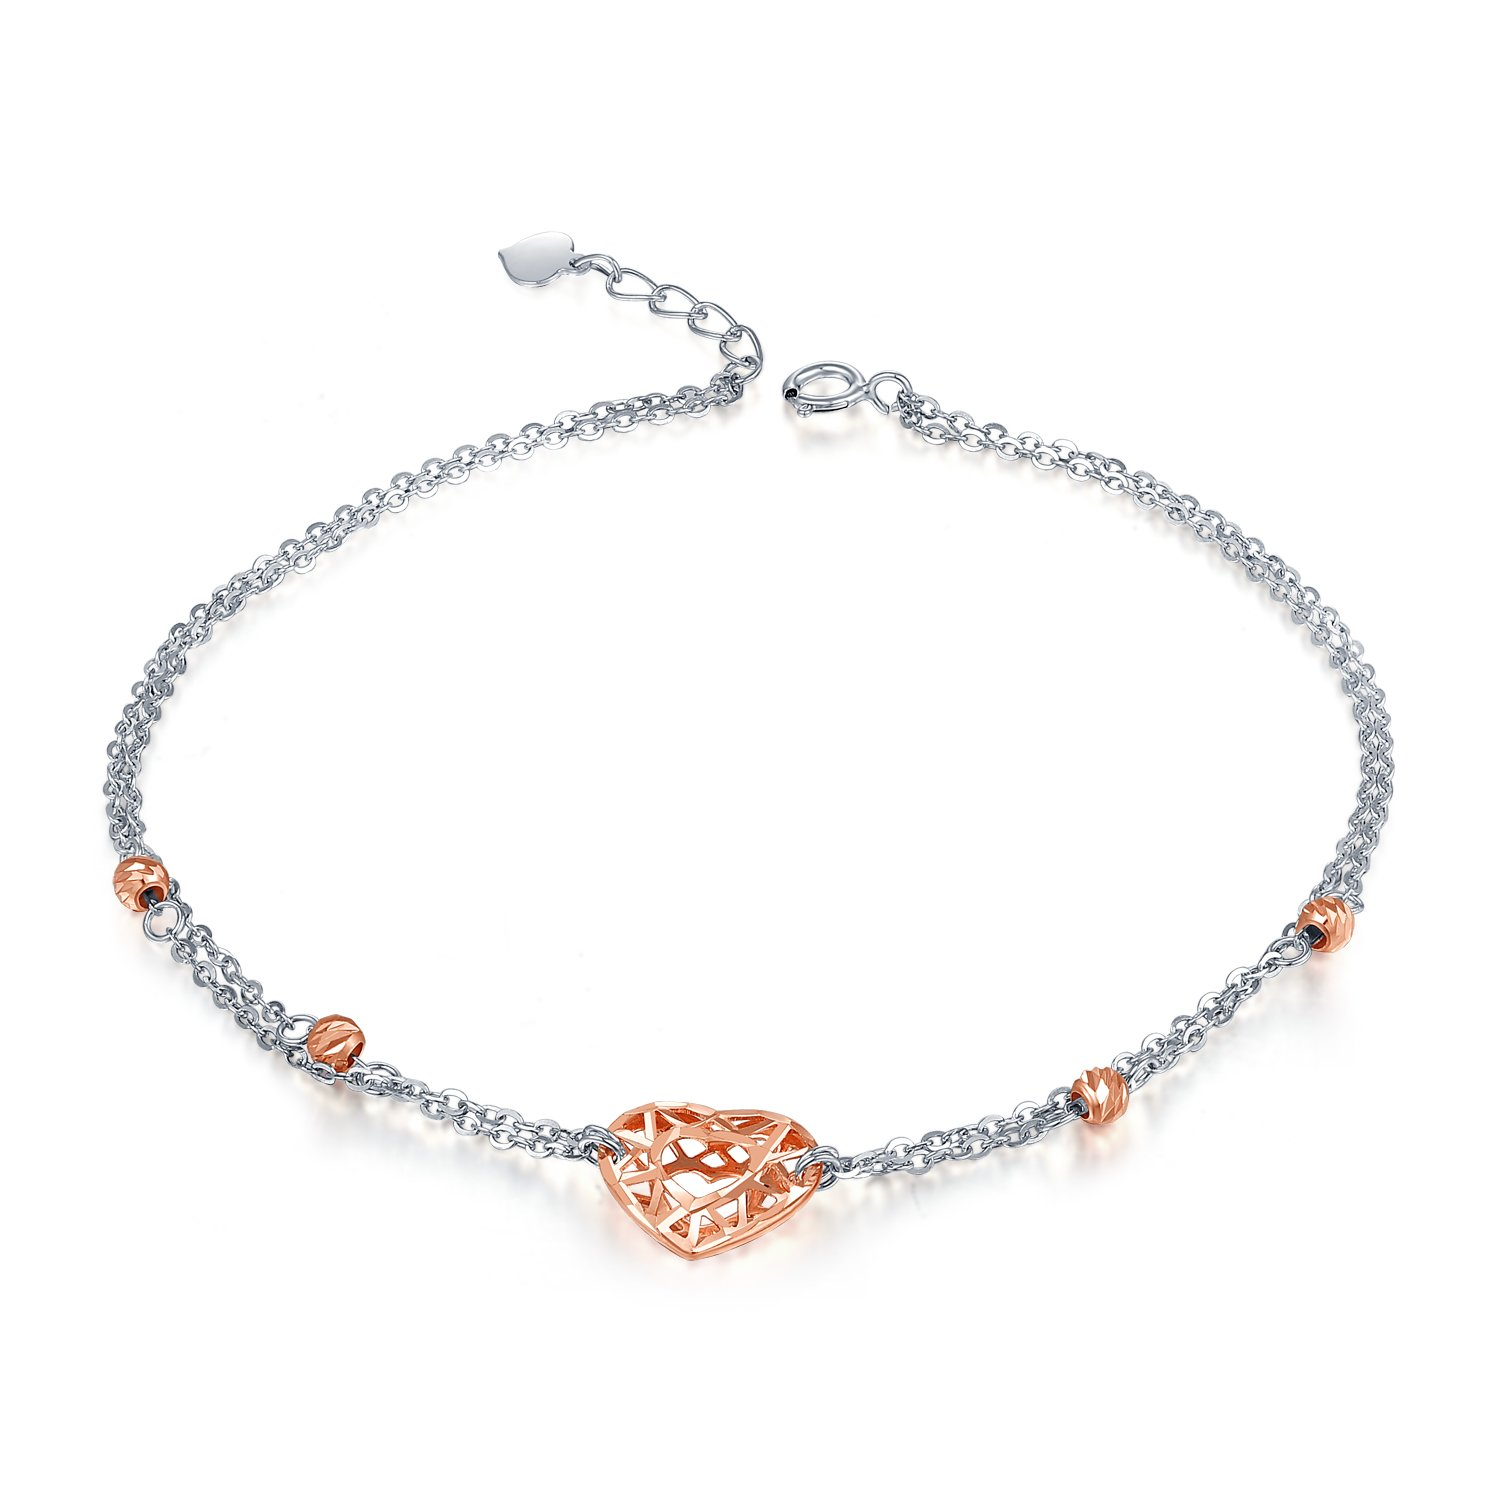 14ct 585 White Rose Gold Double Chain Diamond-Cutting Anklet (23.5cm) Women Jewellery Gift MaBelle C07140K